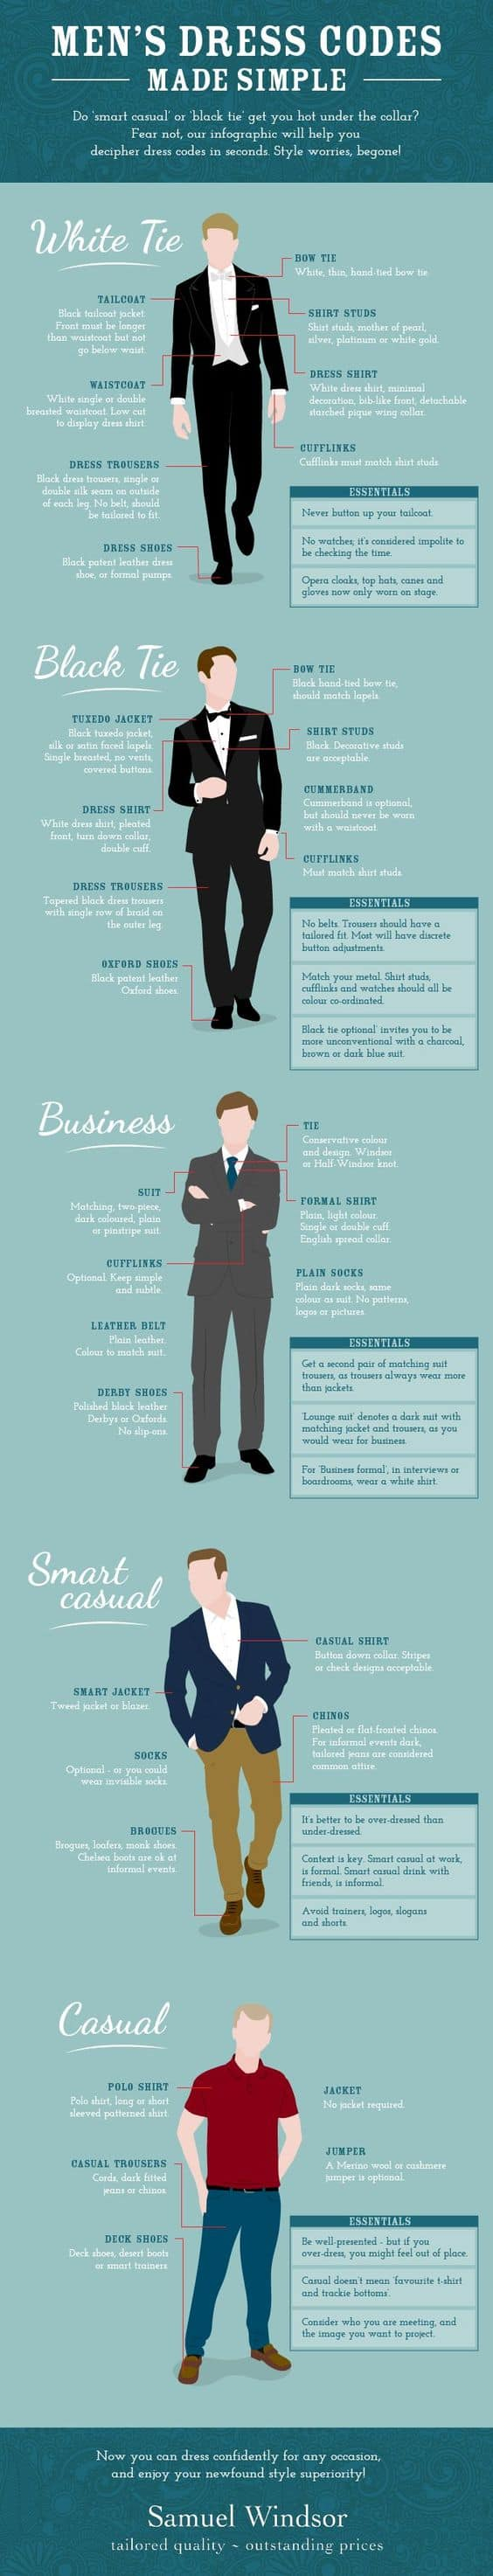 Men's Dress Codes Super Simple